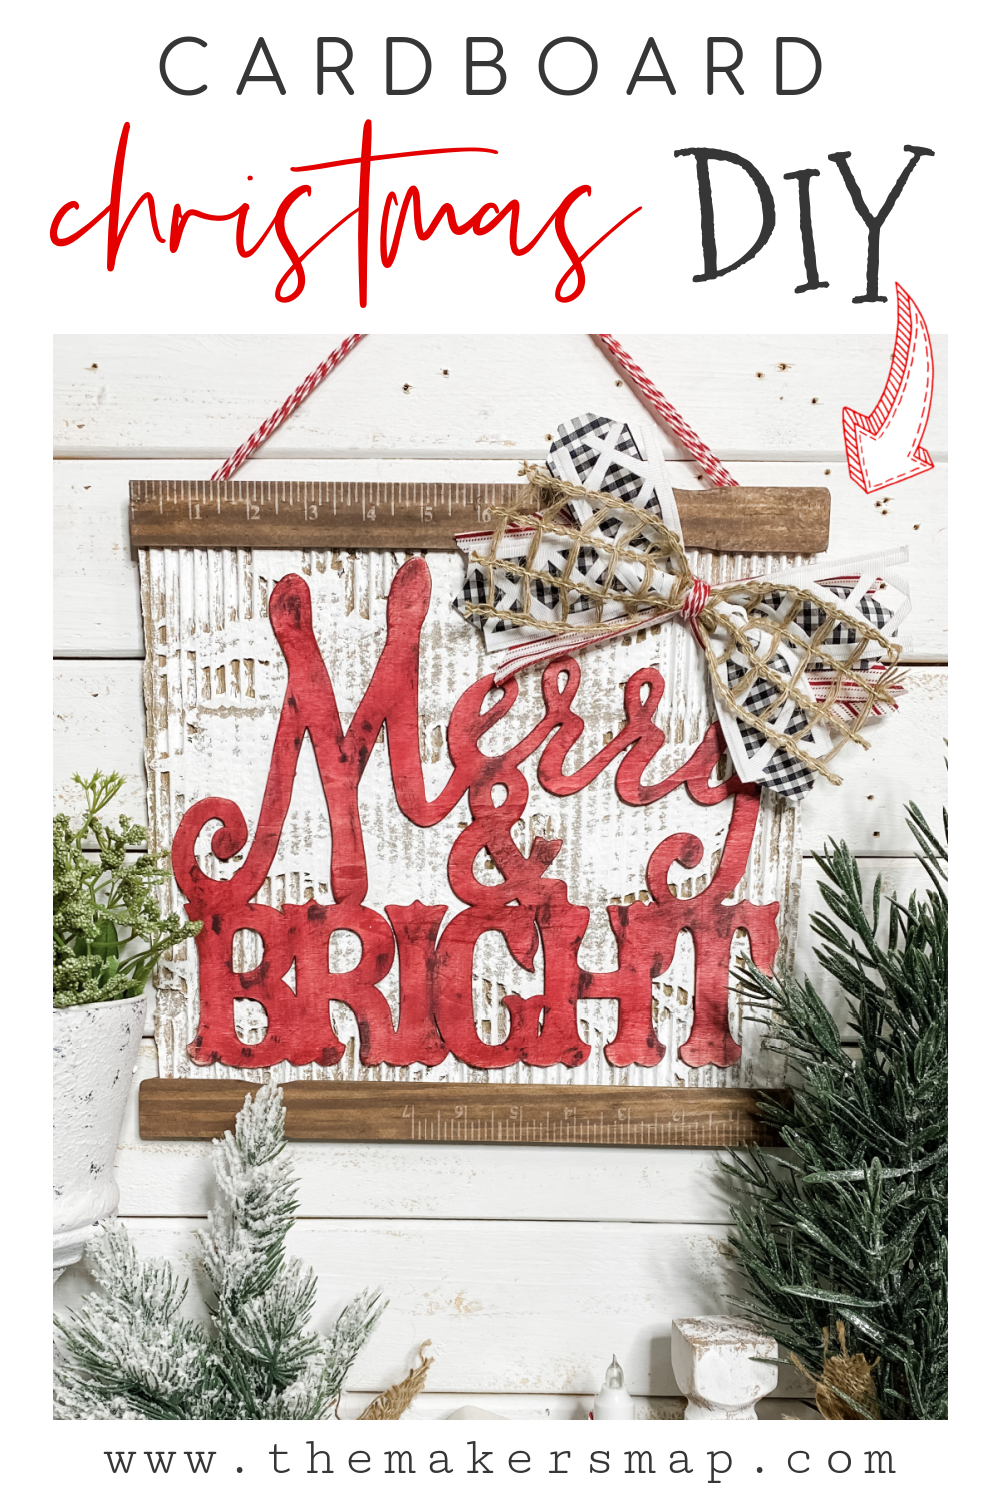 How To Diy A Christmas Merry And Bright Sign With Cardboard